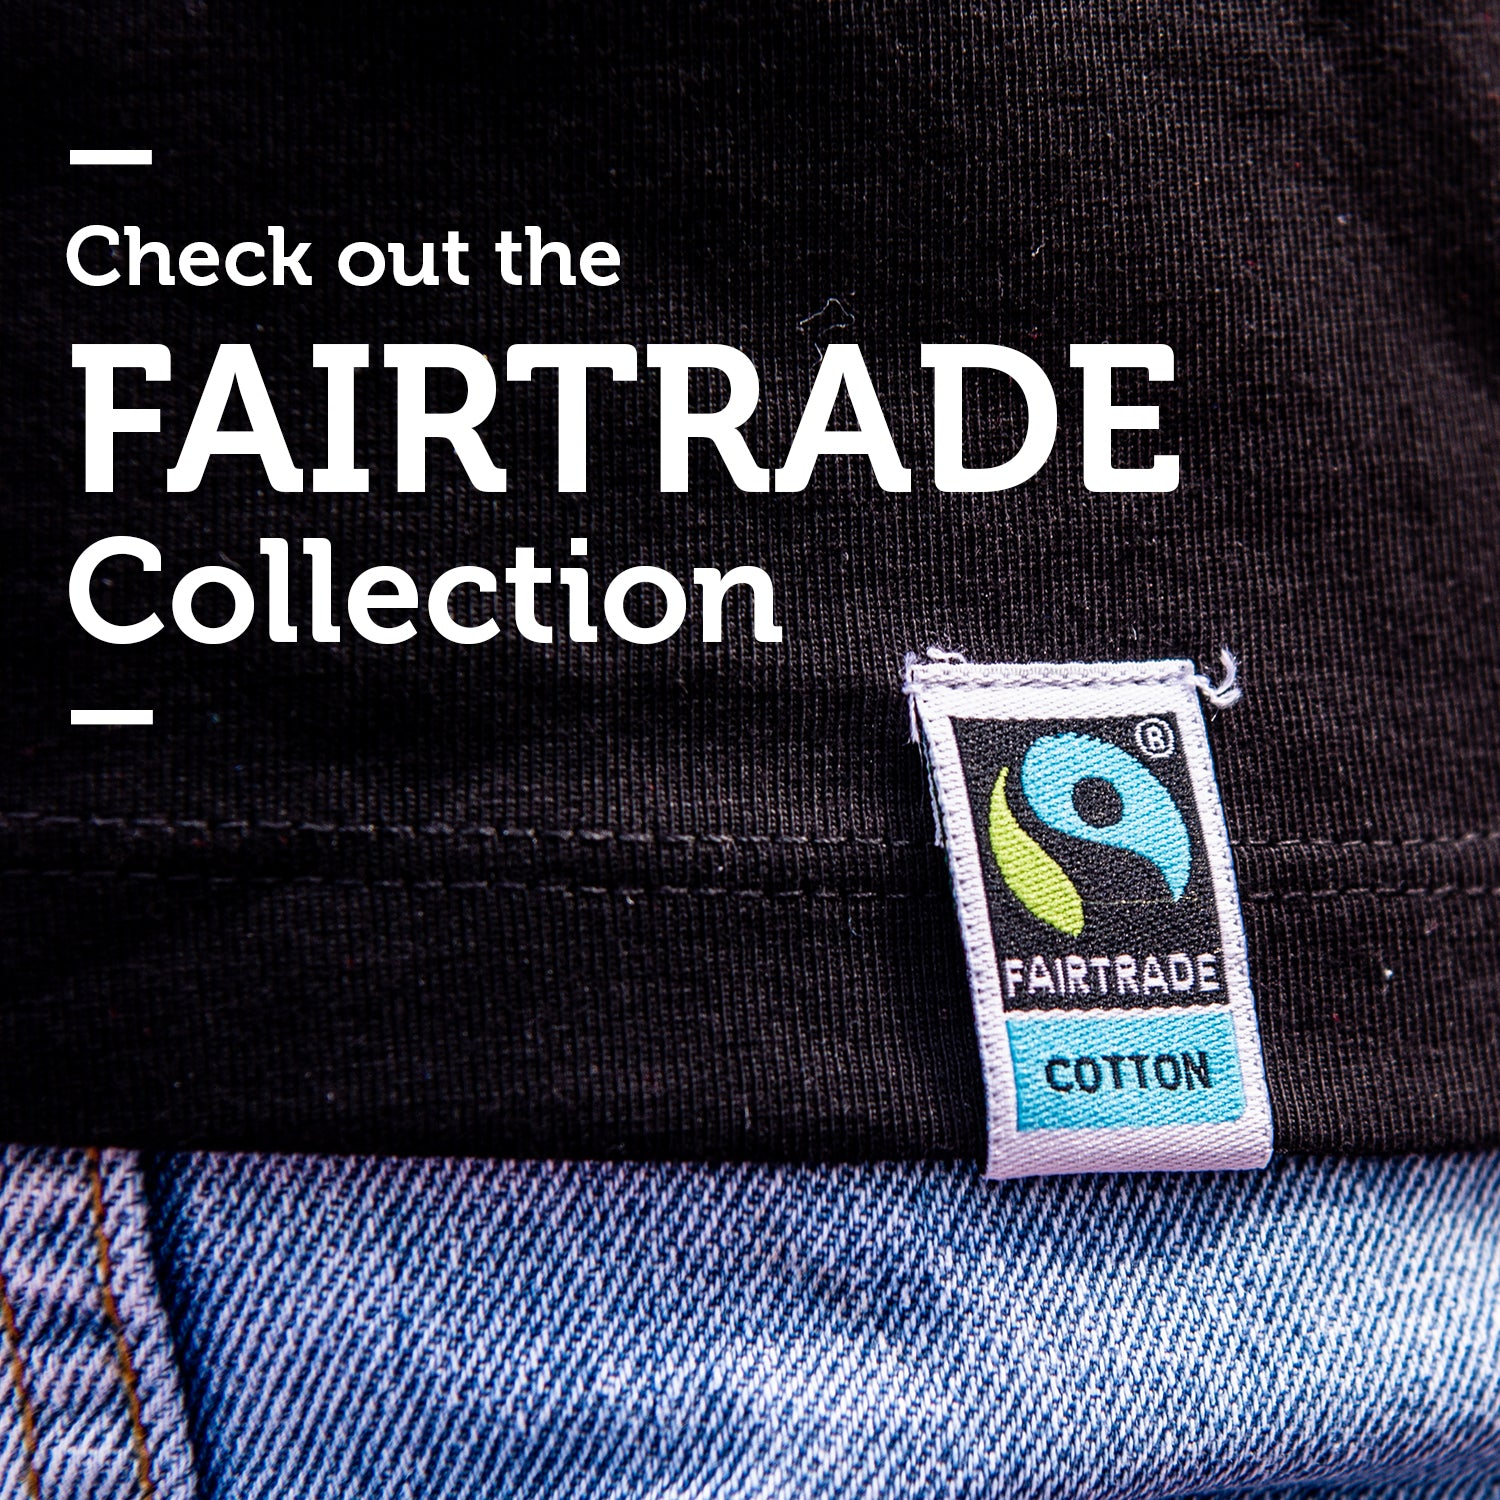 Fairtrade Collection tile